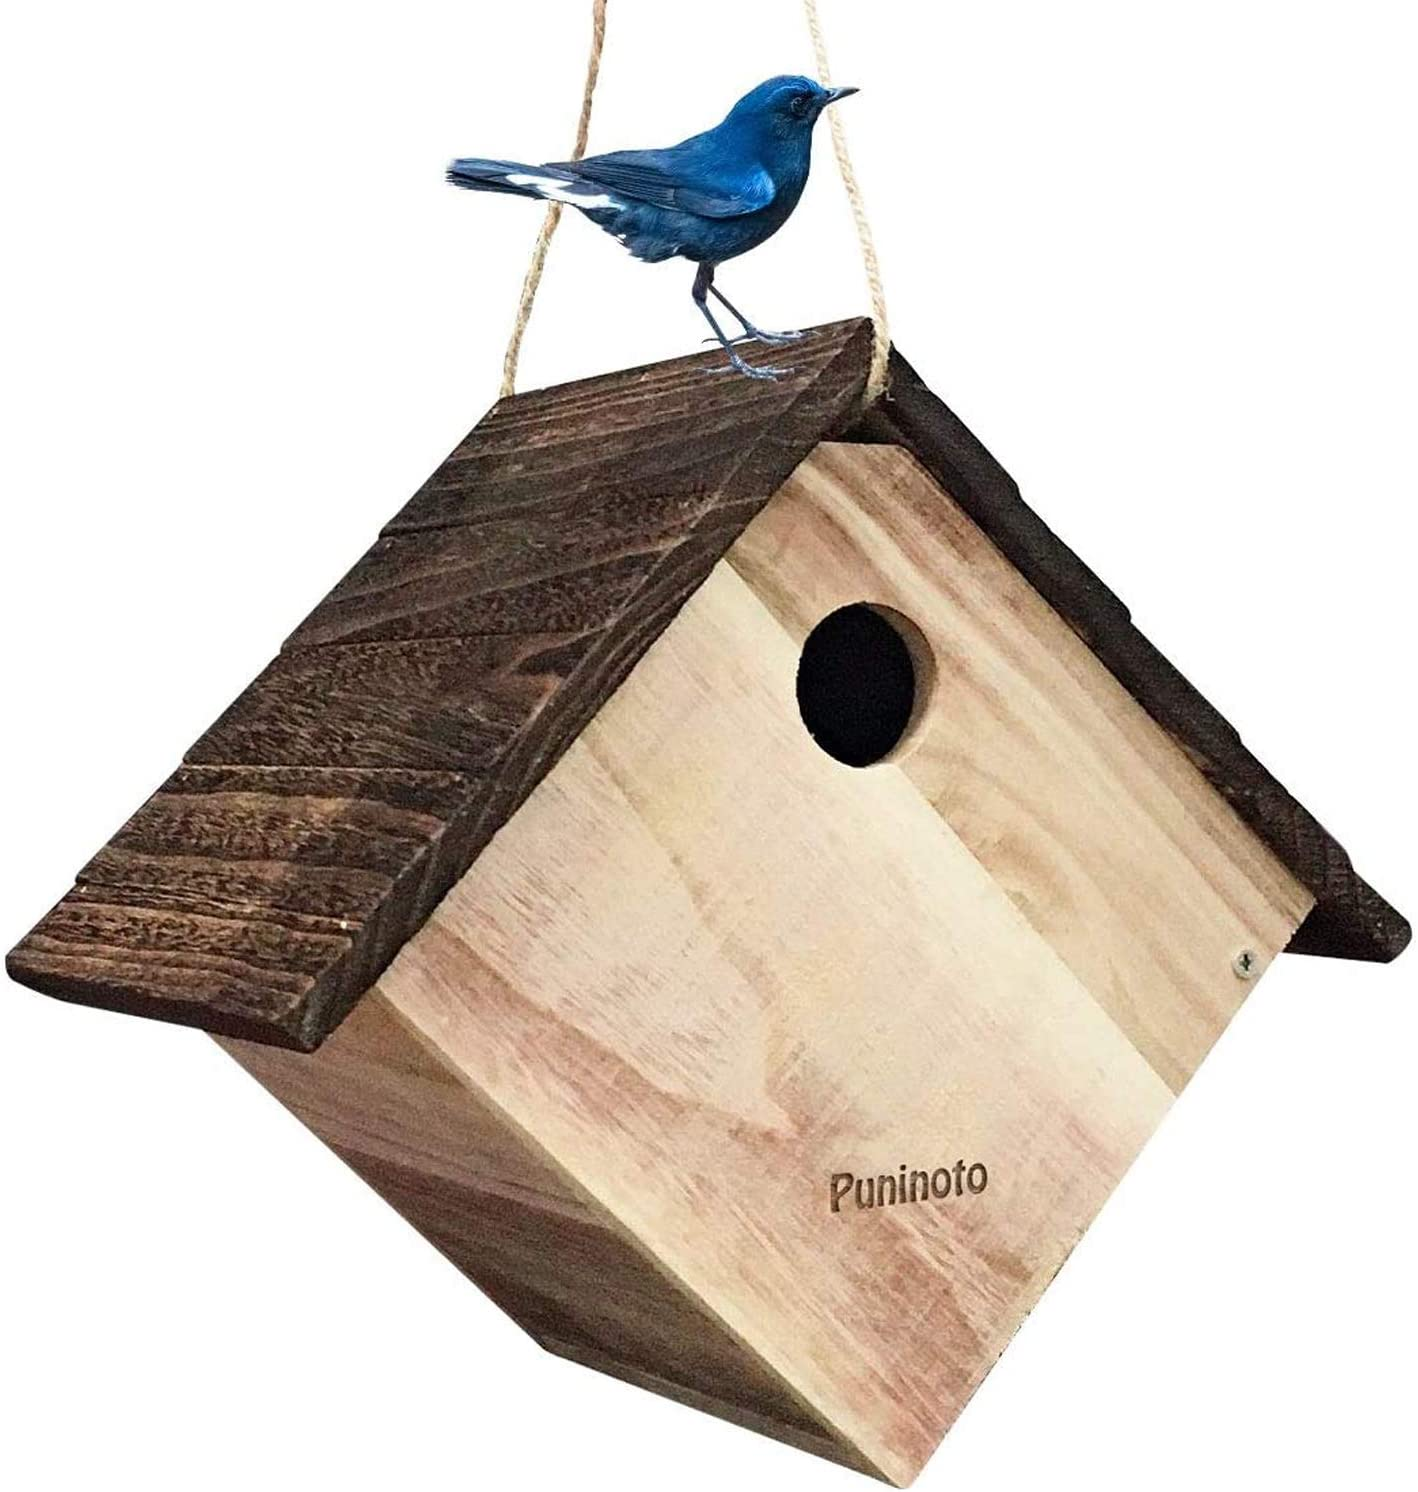 Puninoto Wooden Bird House, Bluebird House, Hanging Birdhouse for Outside,Natural Wooden Handmade Bird Nest,Garden Patio Decoration DIY Birdcage for Dove Finch Wren Robin Sparrow Hummingbird